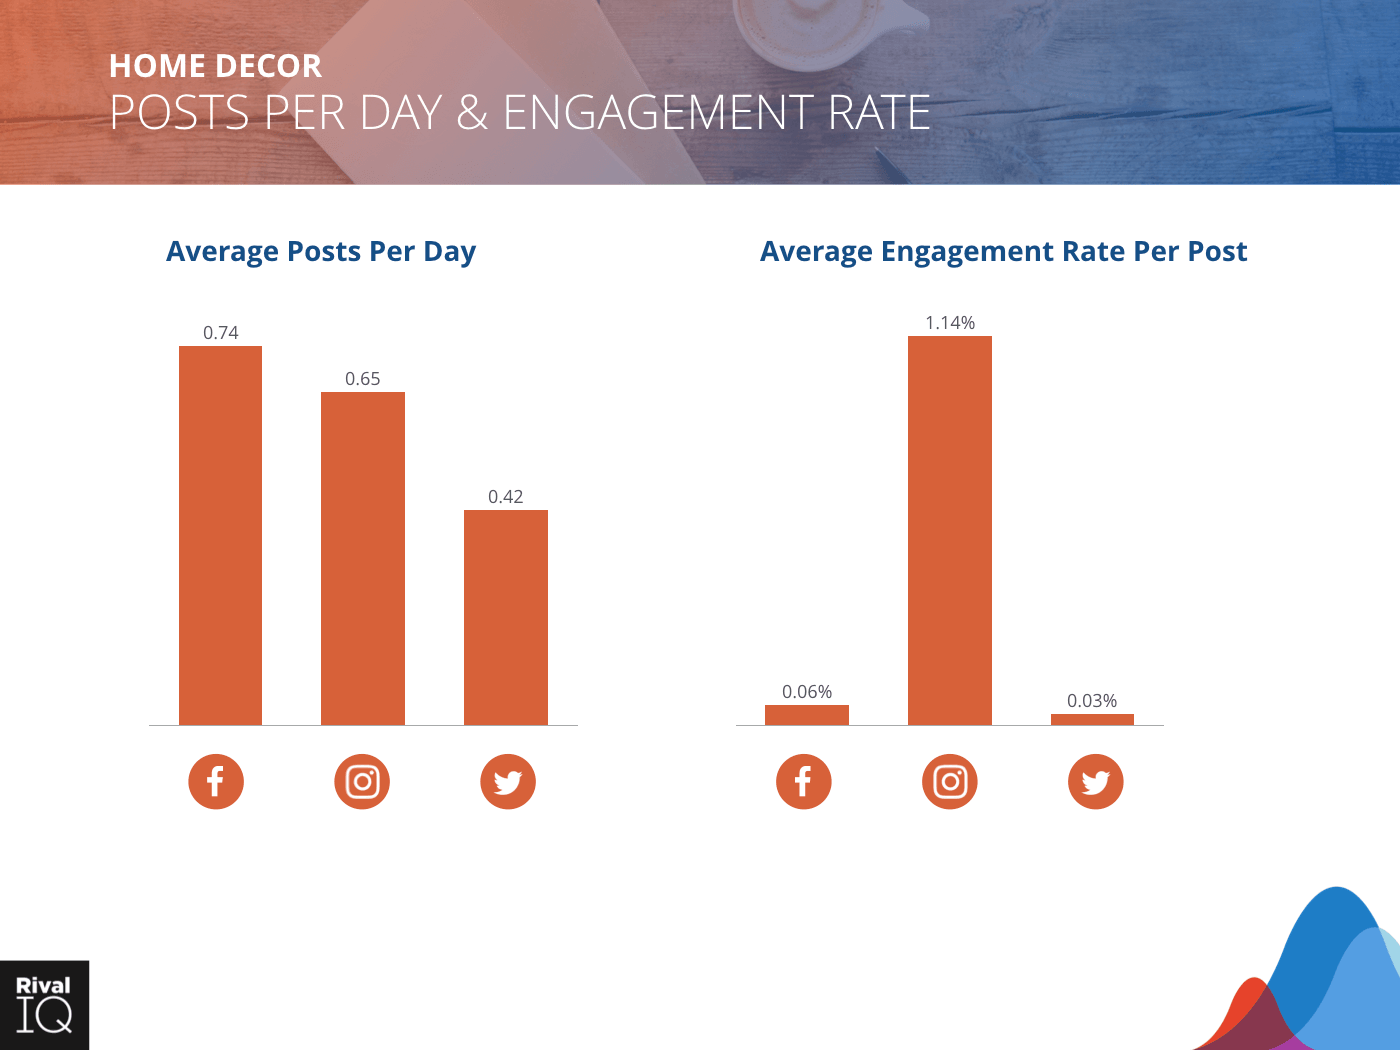 Home Decor Industry: bar graph, average post per day and engagement rate, all channels.